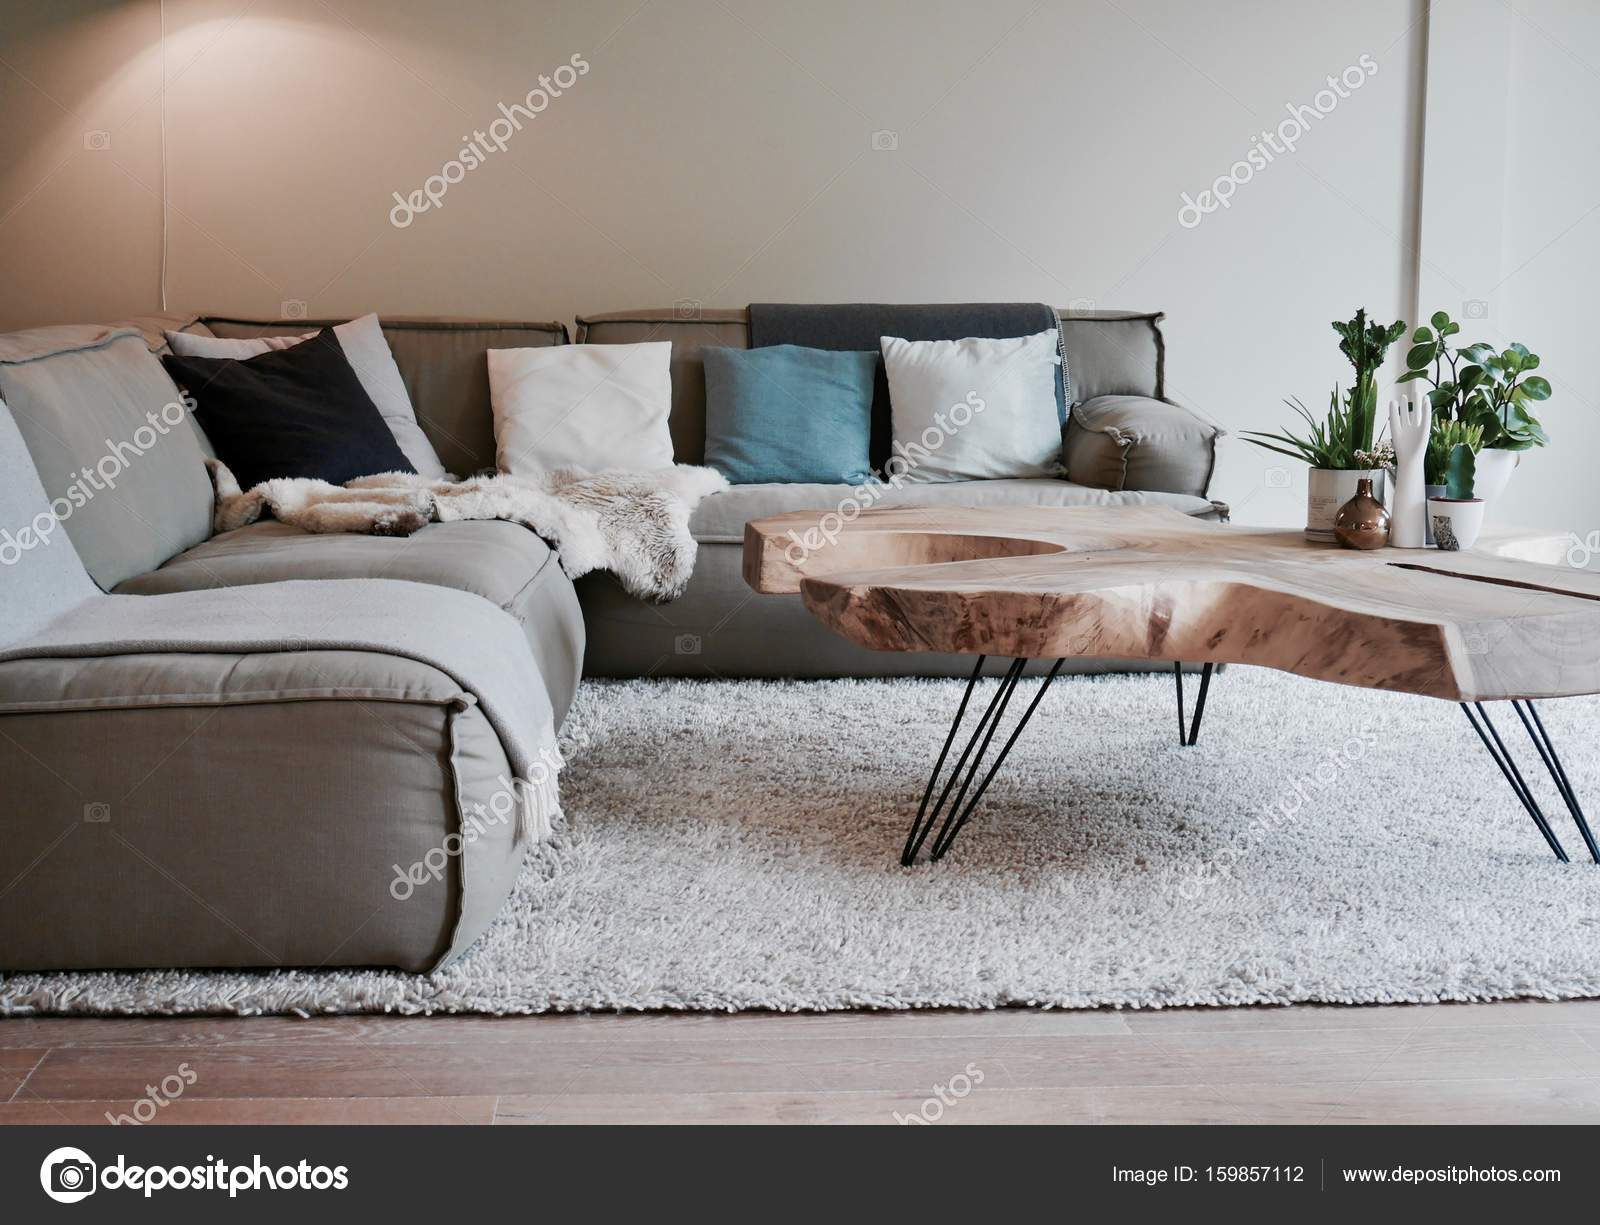 Salontafel Design On Stock.Grote Hoekbank Met Teakhouten Boomstam Salontafel Stock Photo